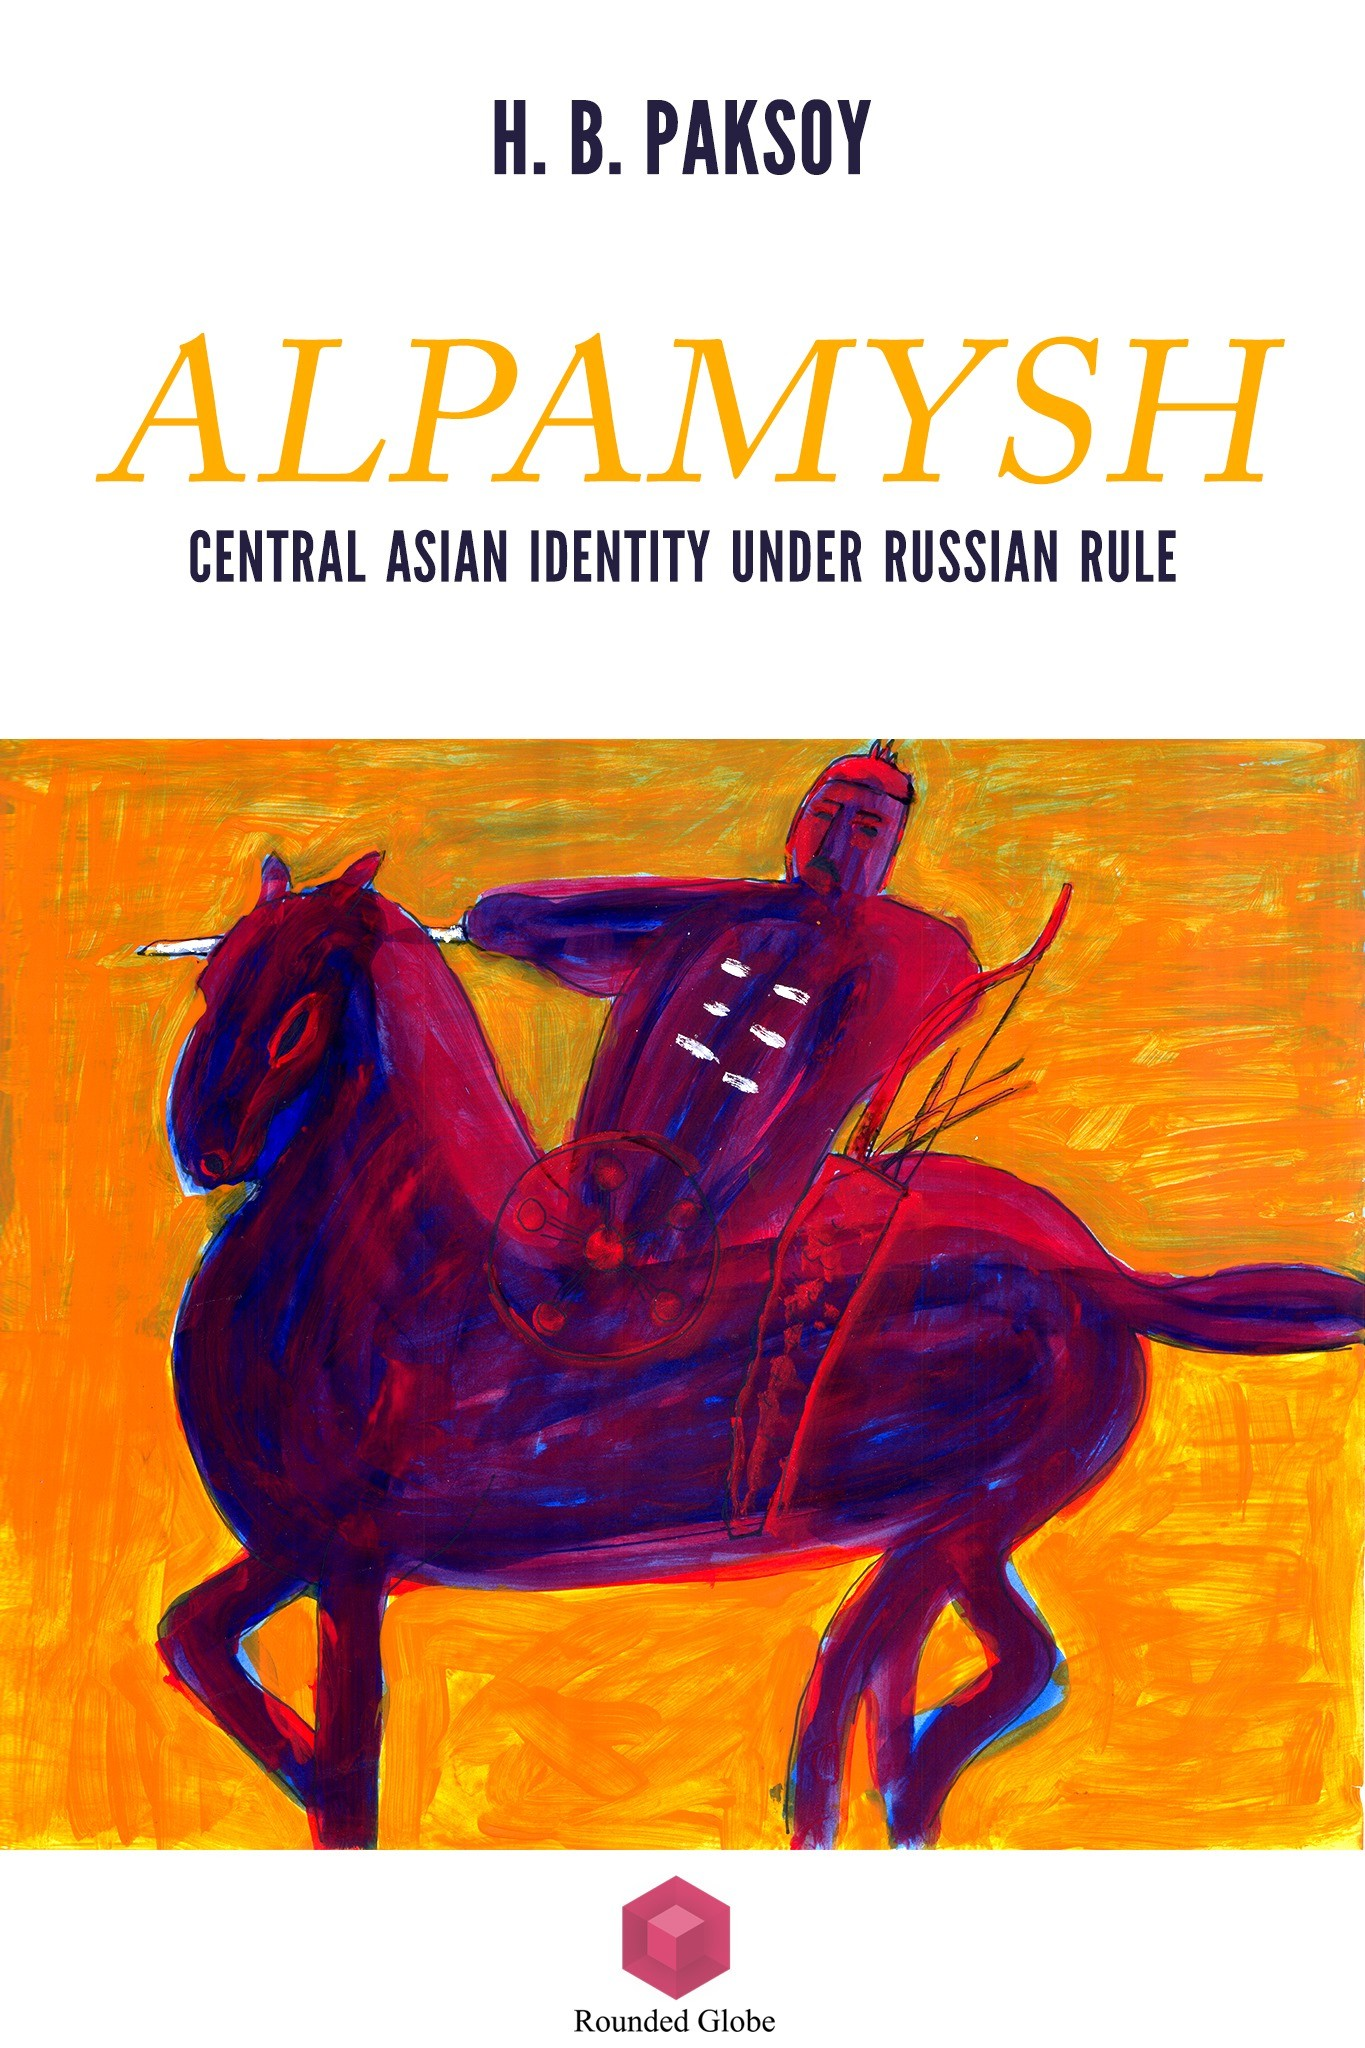 c30c9b509df Rounded Globe — Alpamysh  Central Asian Identity under Russian Rule